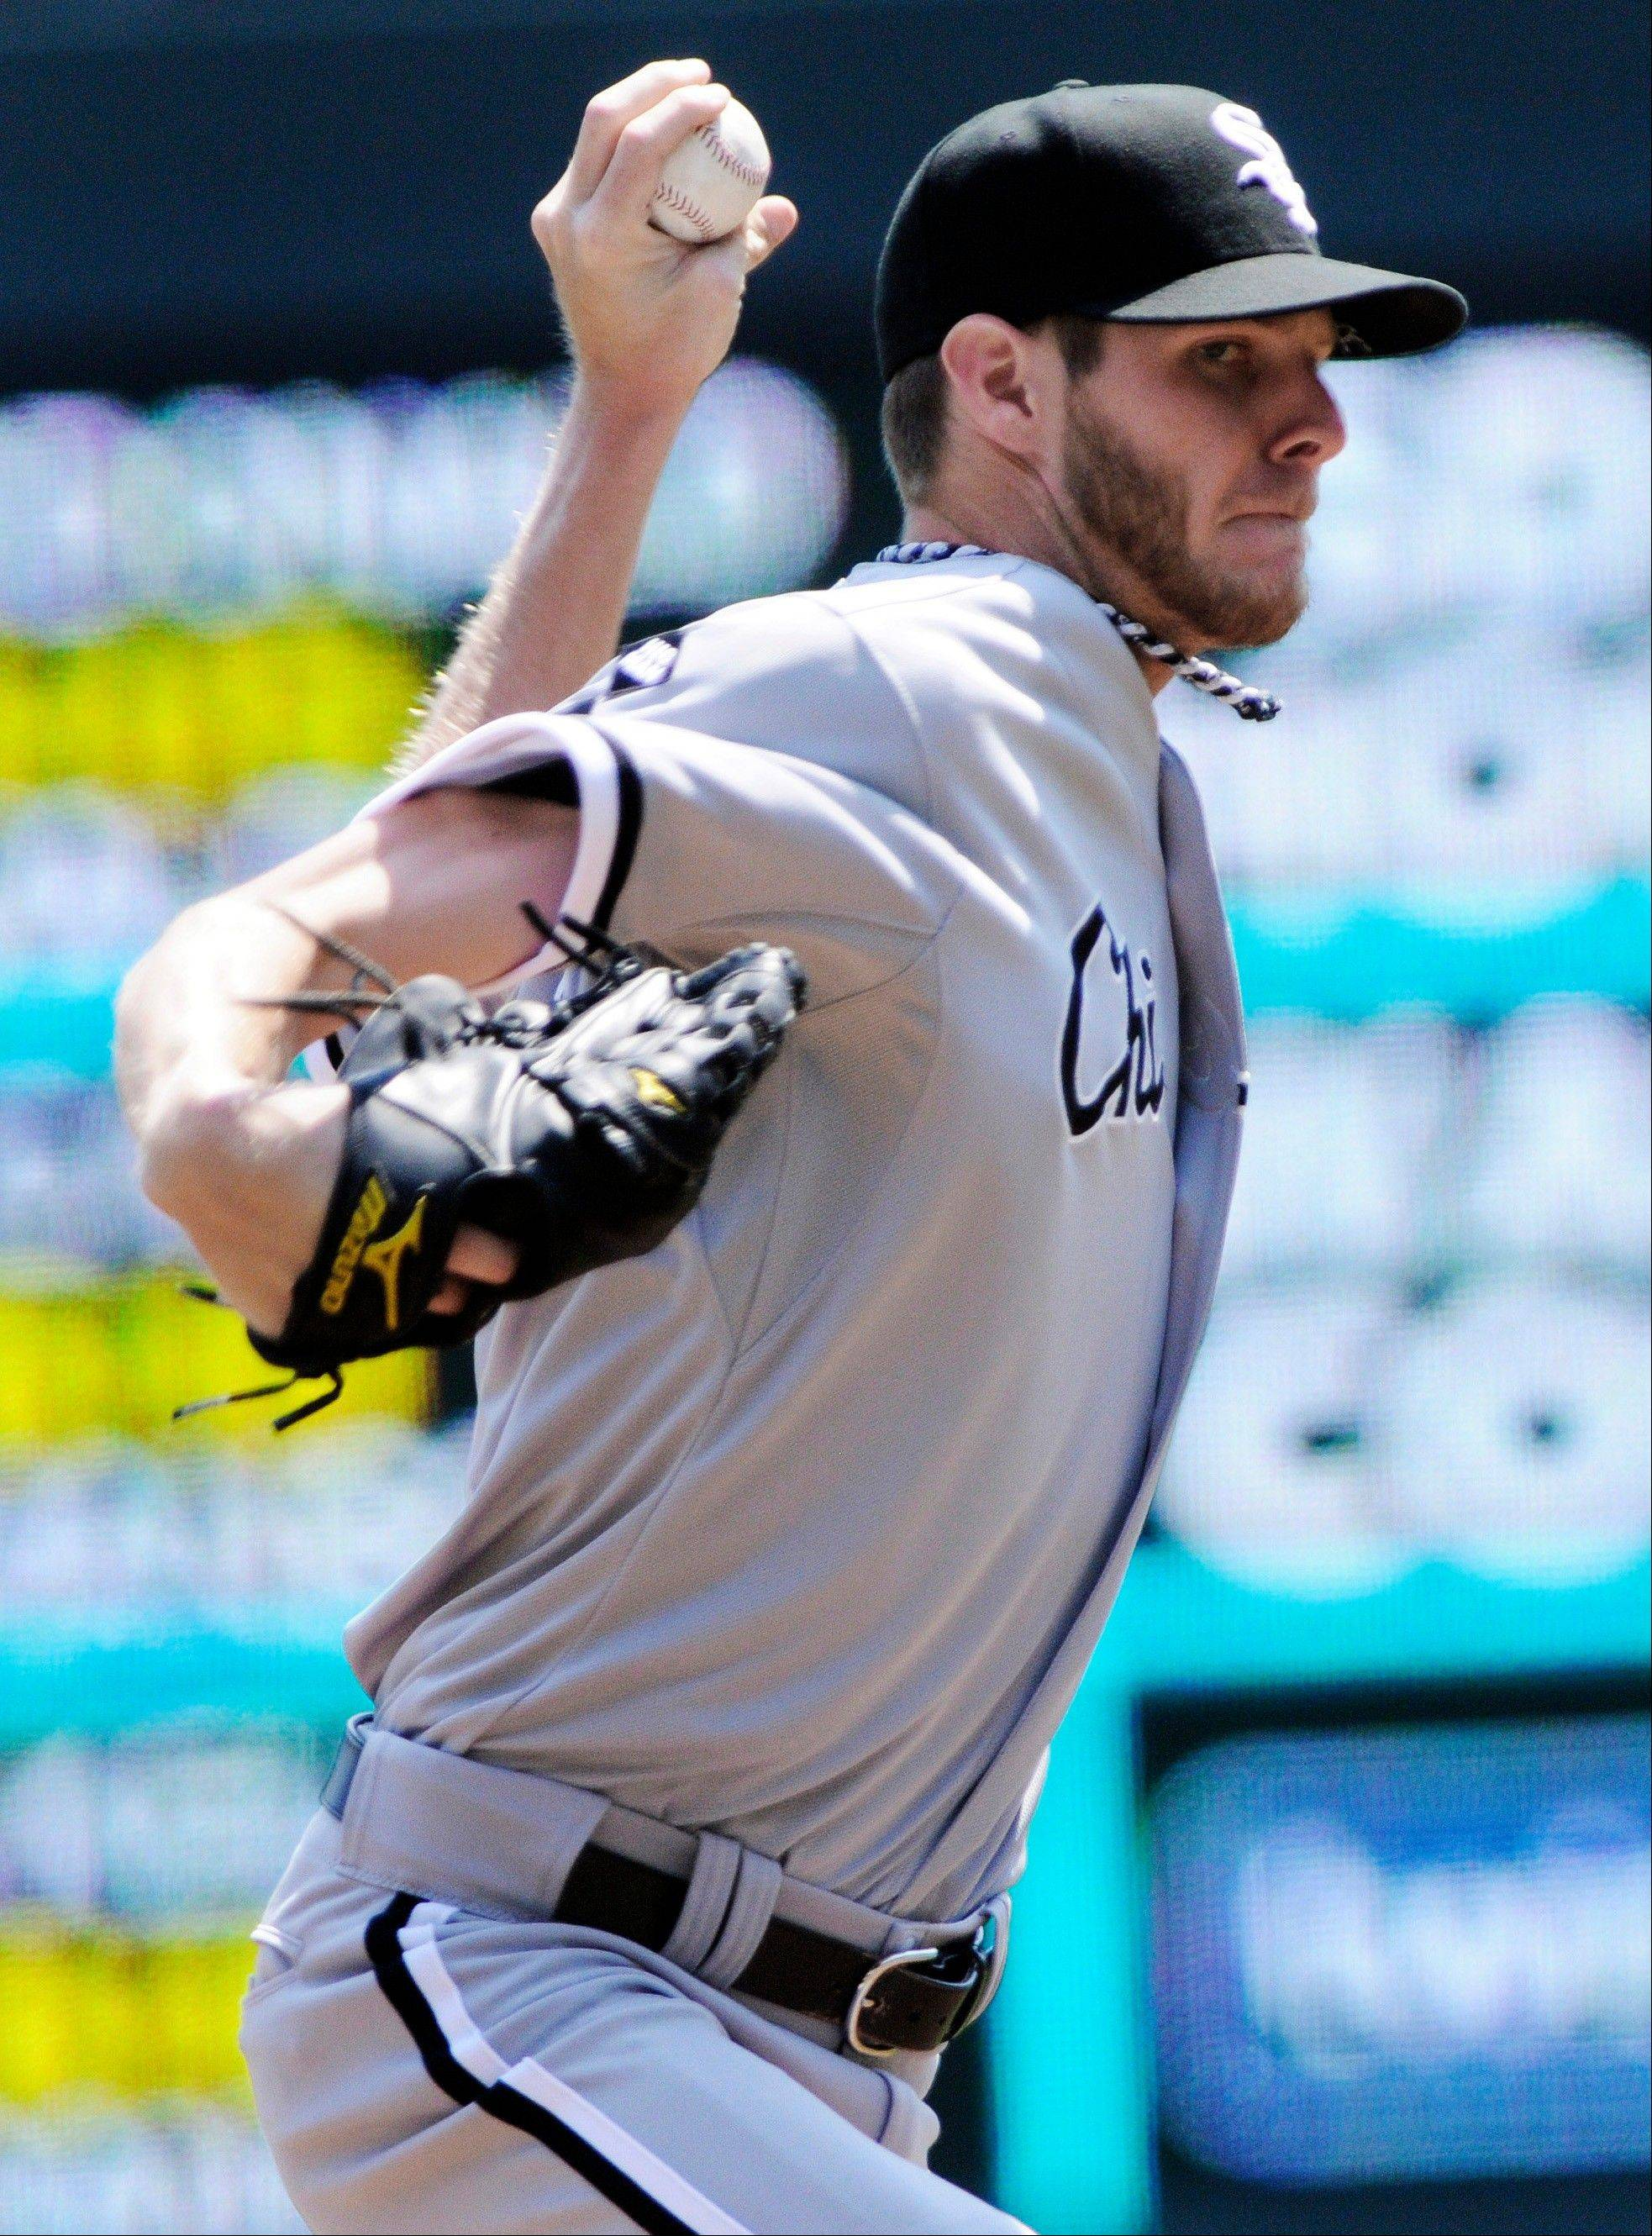 White Sox pitcher Chris Sale was selected to the American League all-star team as a reserve, along with Paul Konerko and Adam Dunn. Two Cubs (Starlin Castro and Bryan LaHair) were named to the NL squad.